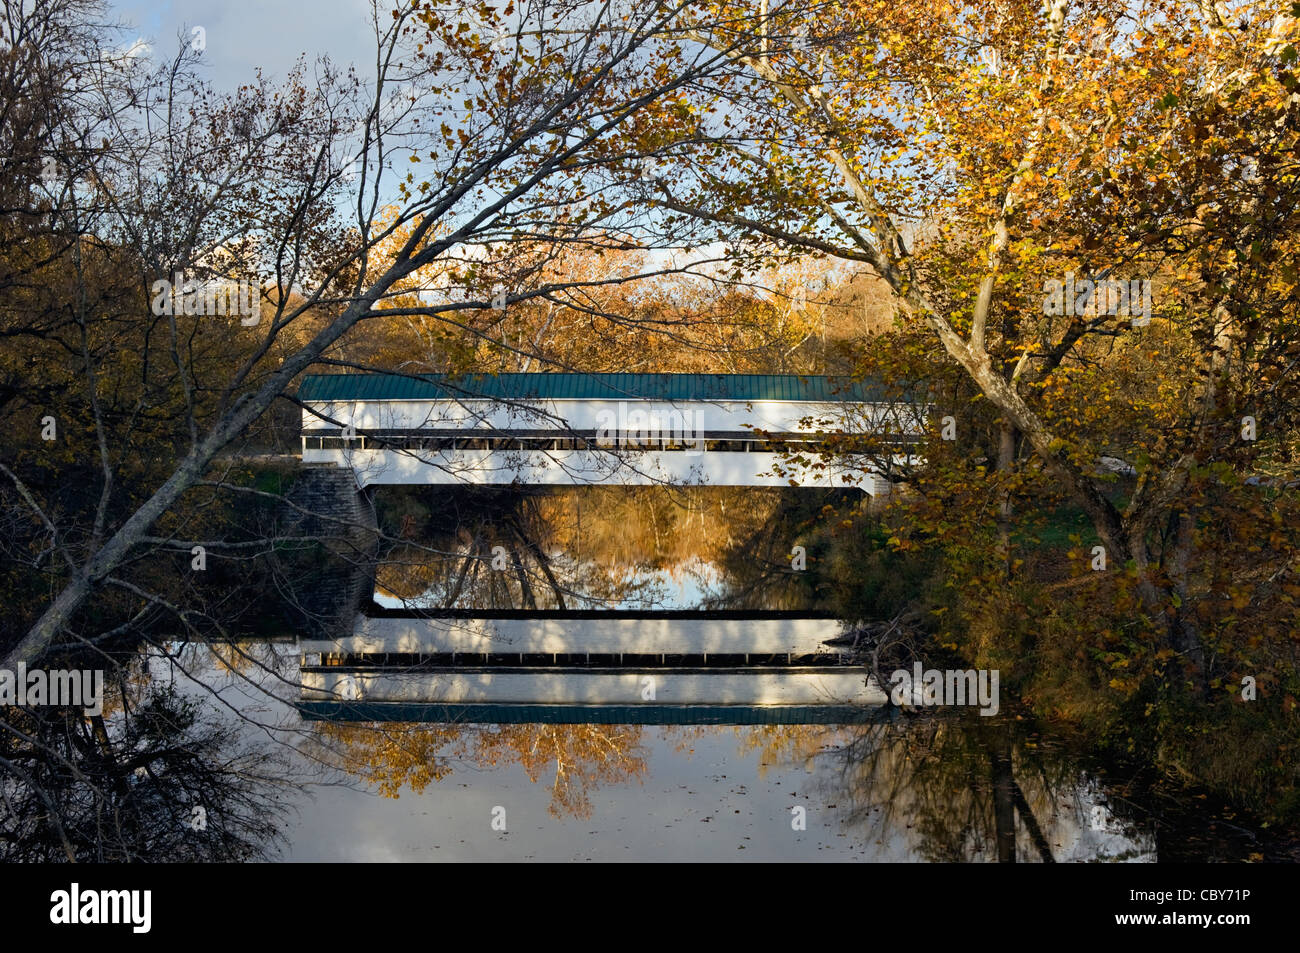 Westport Covered Bridge on Sand Creek in Decatur County, Indiana - Stock Image